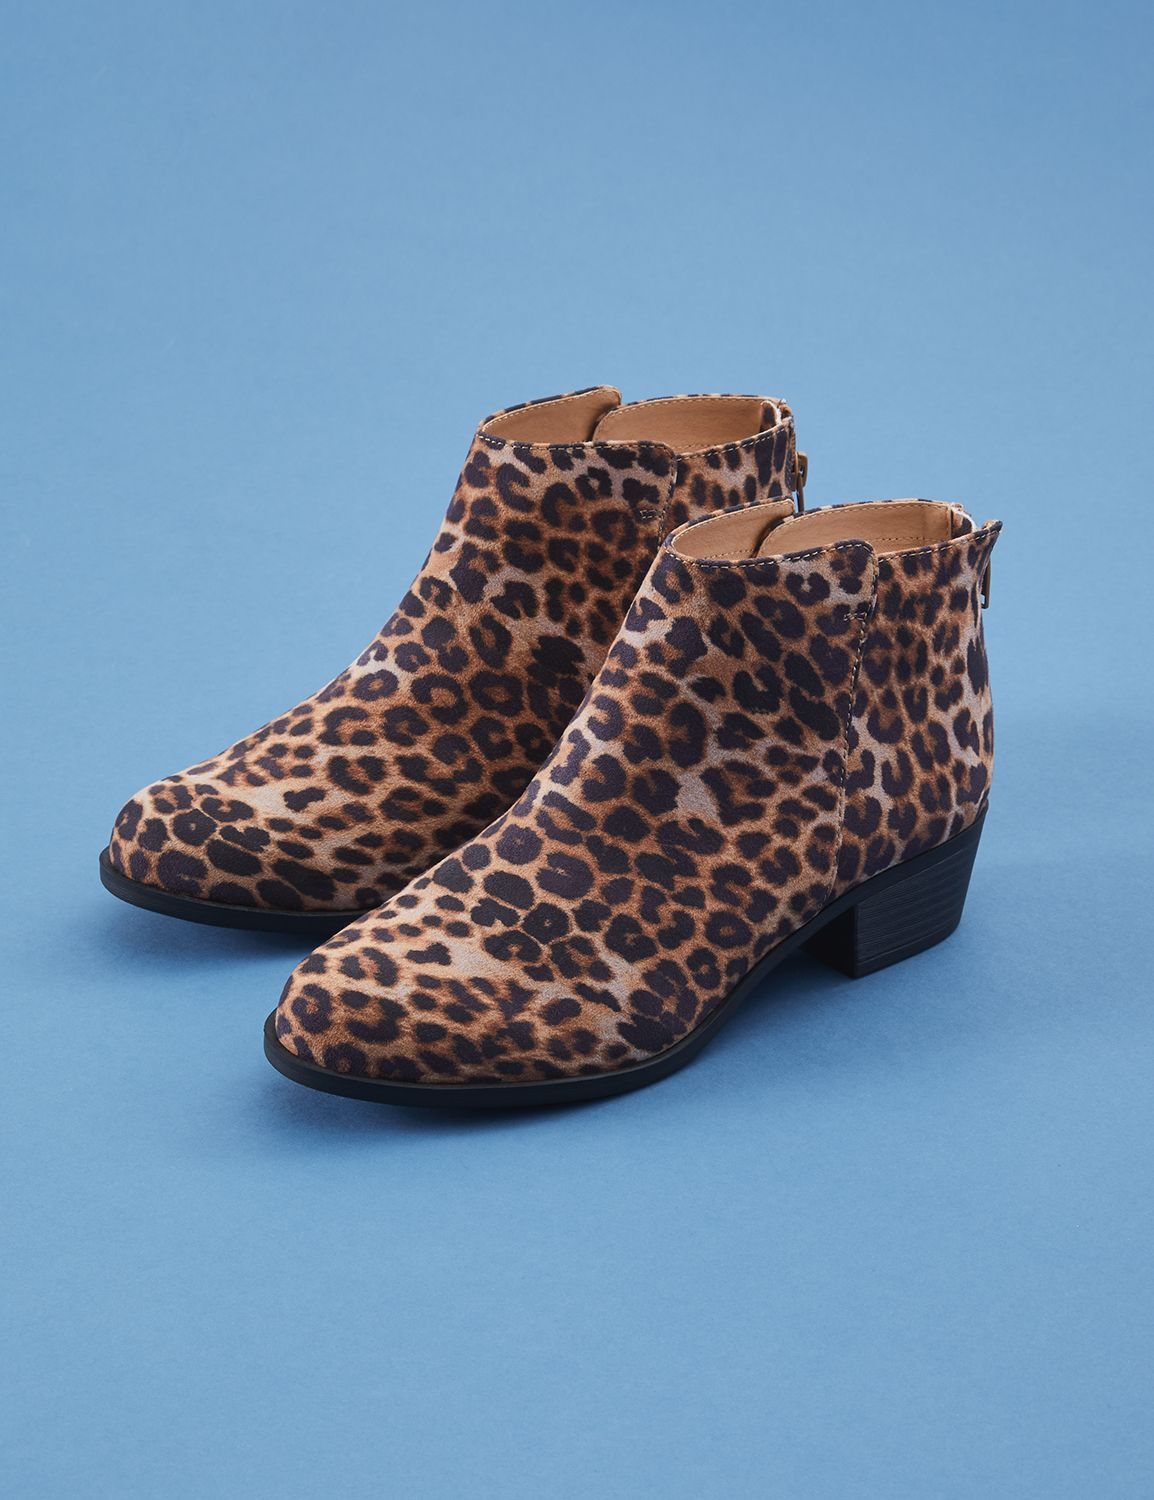 Retro Boots, Granny Boots, 70s Boots Lane Bryant Womens Leopard Low Heel Bootie 12W Animal Ombre $64.95 AT vintagedancer.com